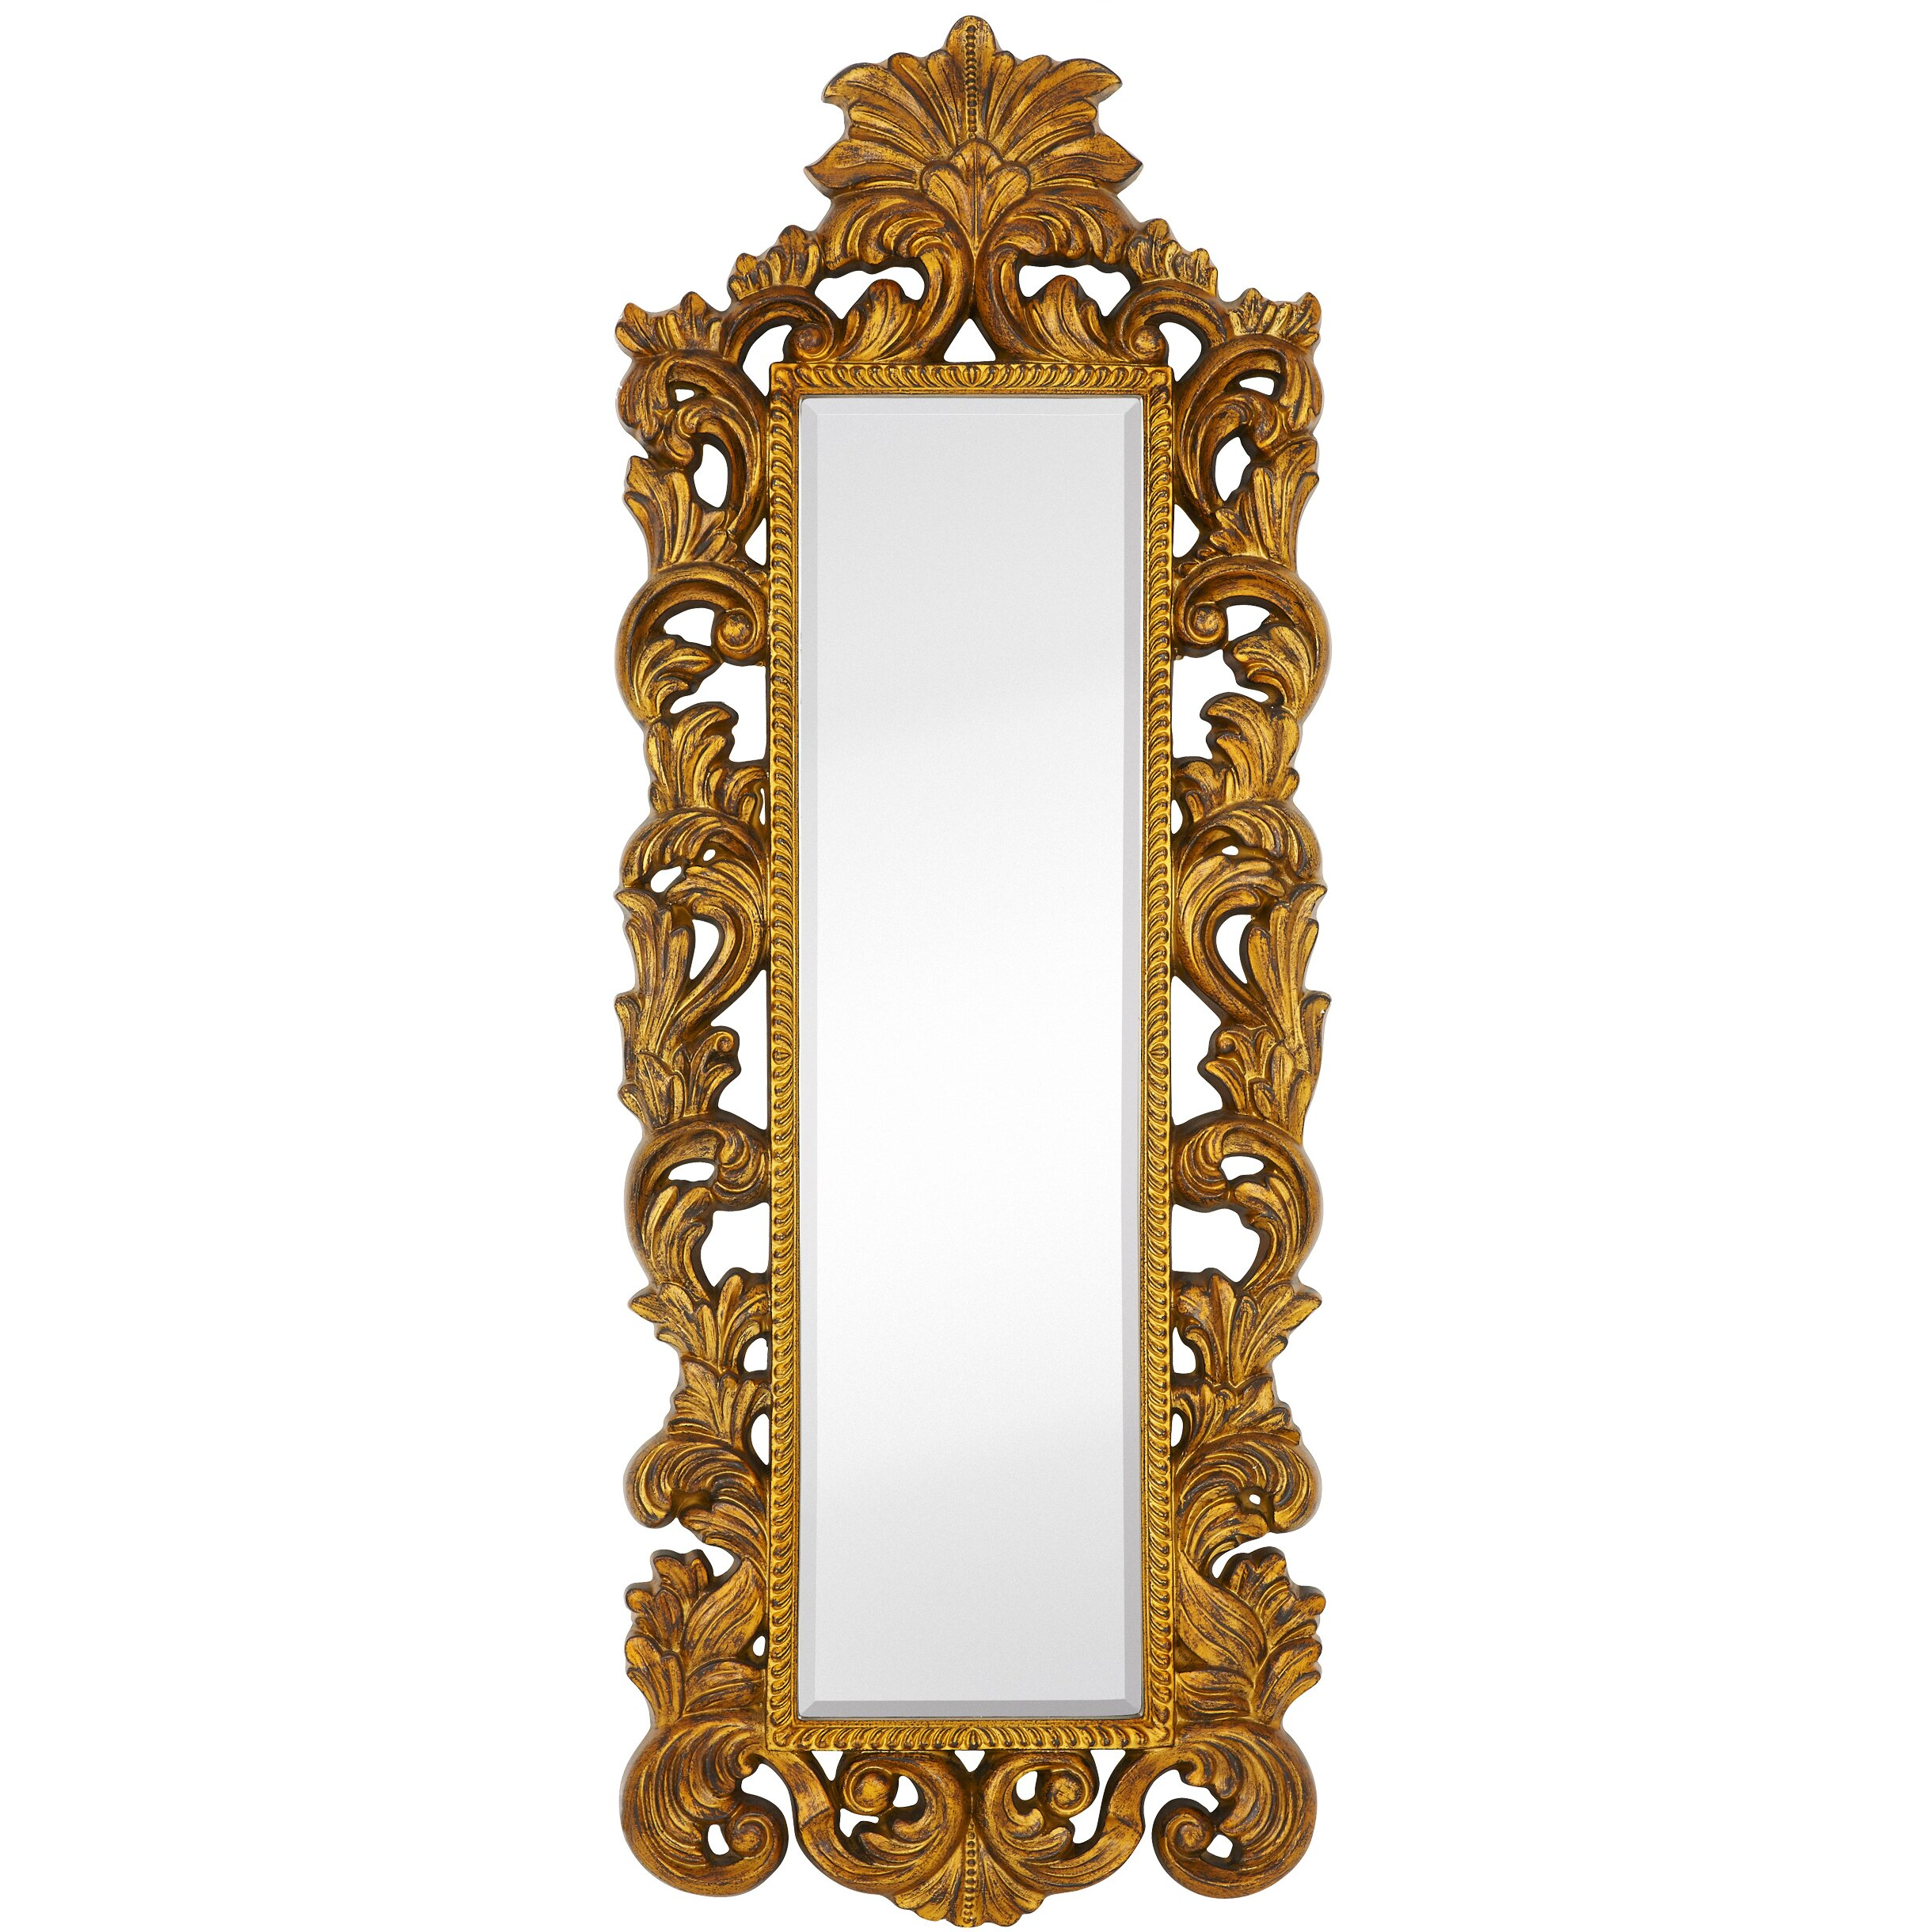 Majestic mirror tall narrow mirror leaf with black rub for Tall slim mirror